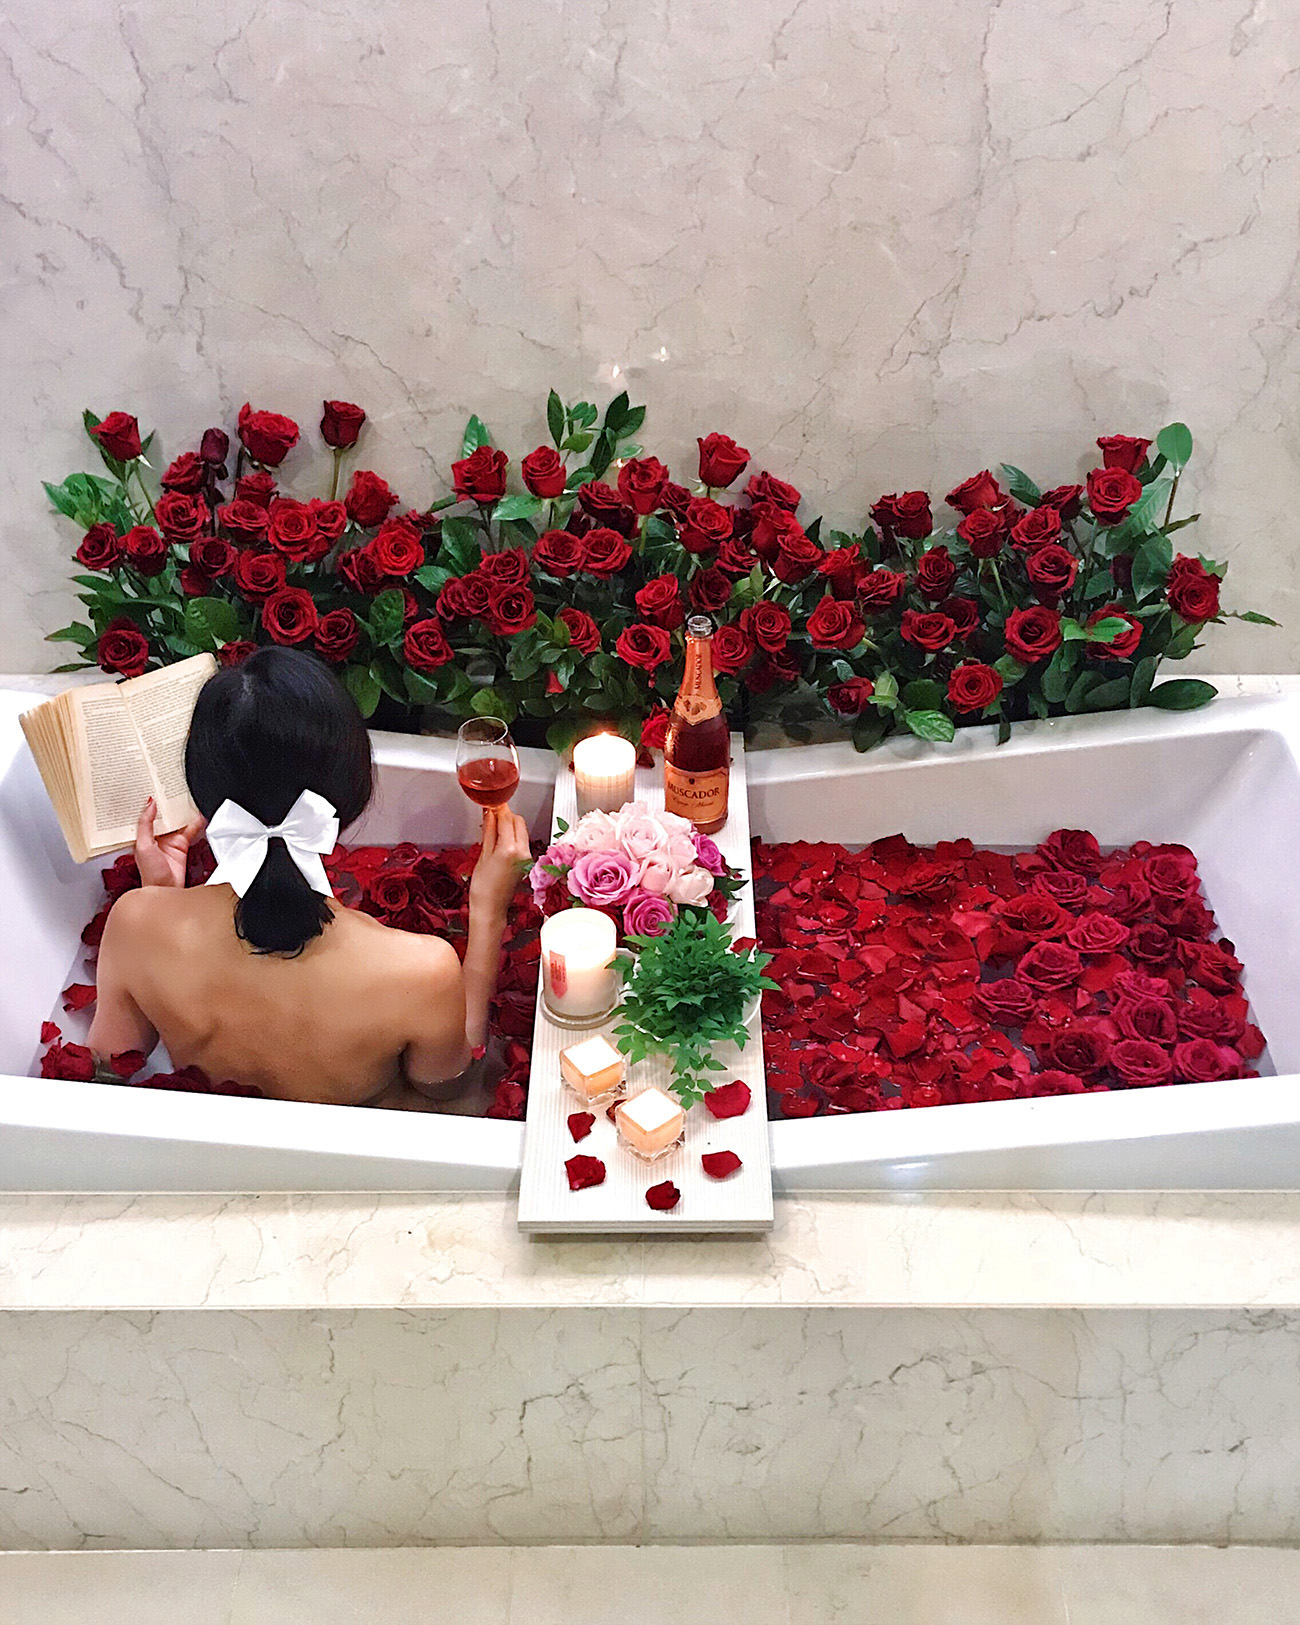 9 Days of Valentine - Day 1: Love Yourself | Of Leather and Lace - Fashion Blog by Tina Lee | rose bath, luxurious bath, bathtub goals, home decor, bathroom decor inspiration